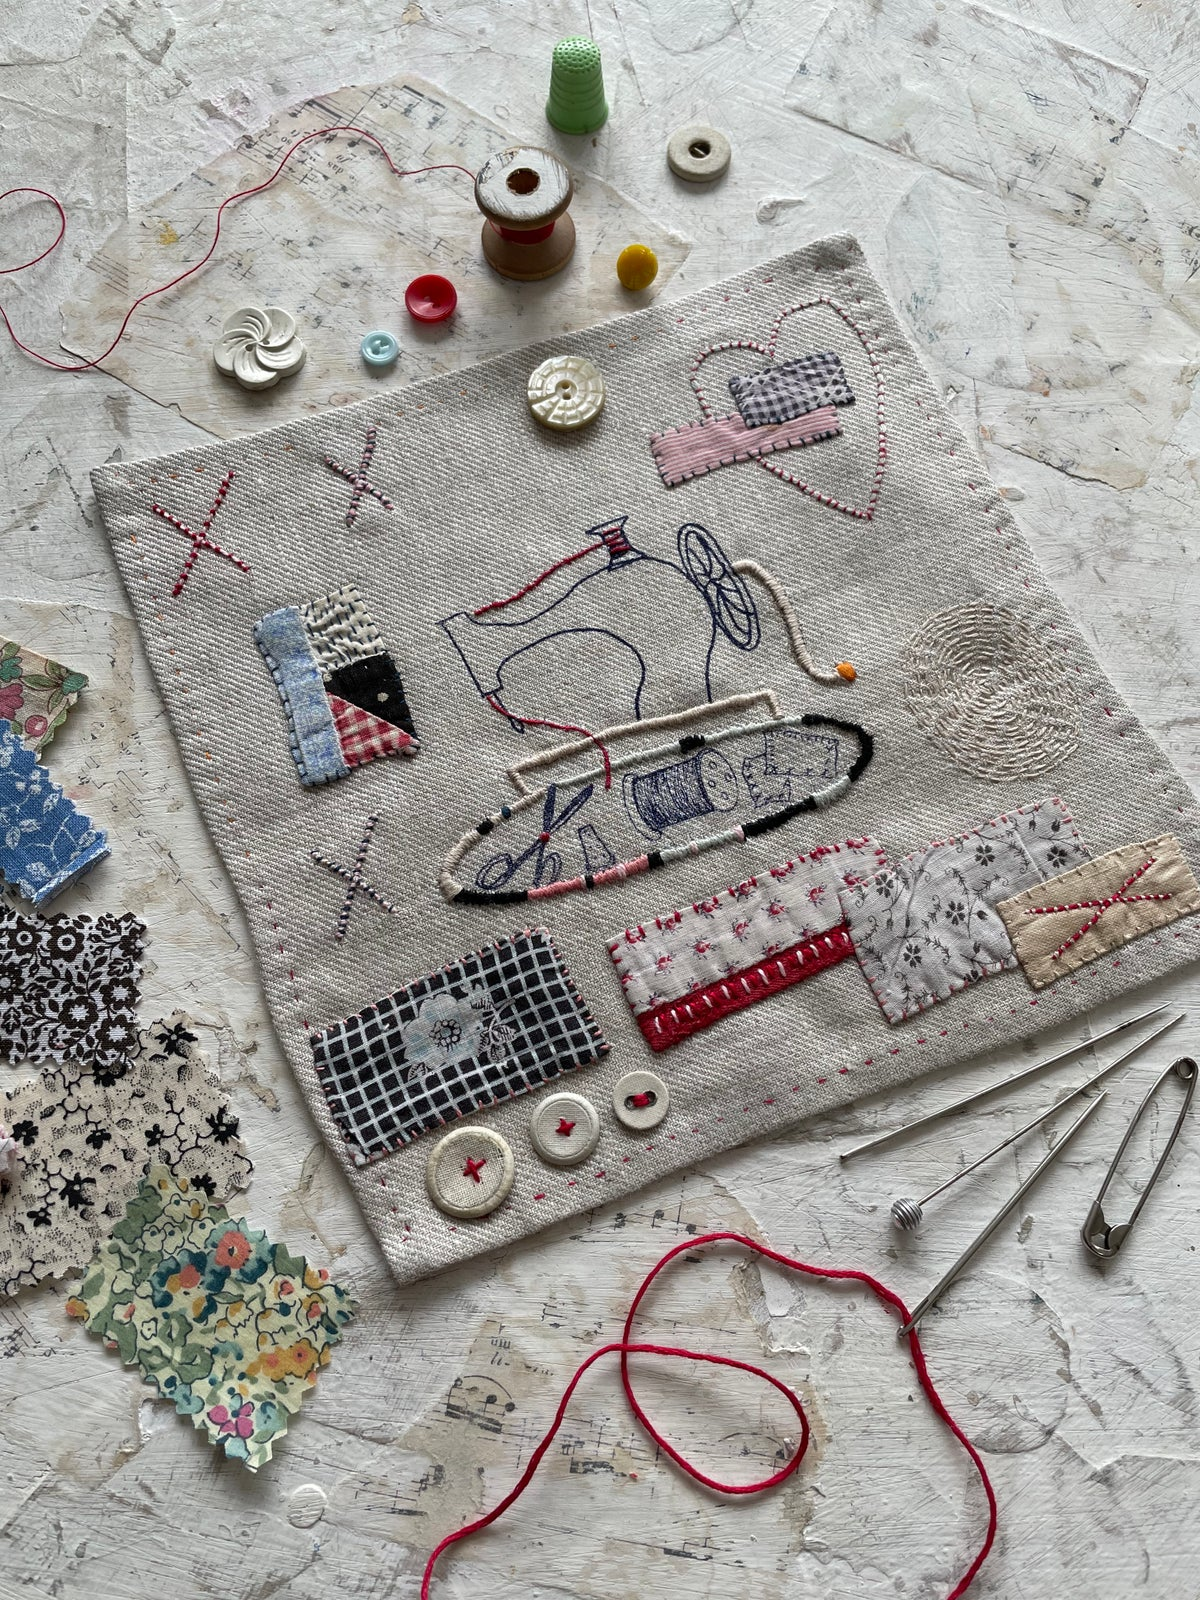 Image of 'Sewing machine' embroidery template on soft grey